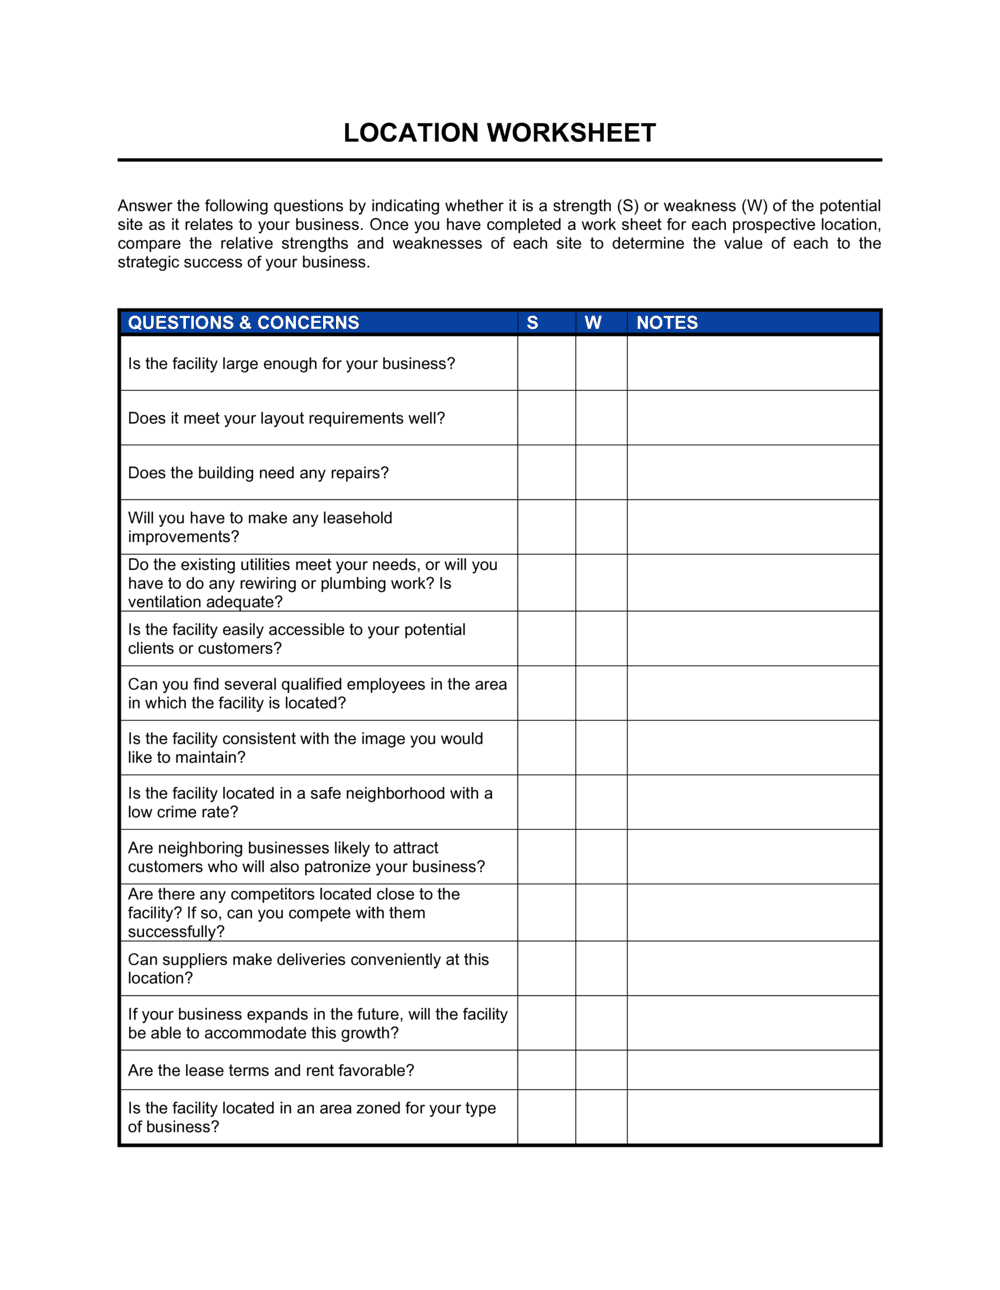 Business-in-a-Box's Worksheet Location Conditions Template